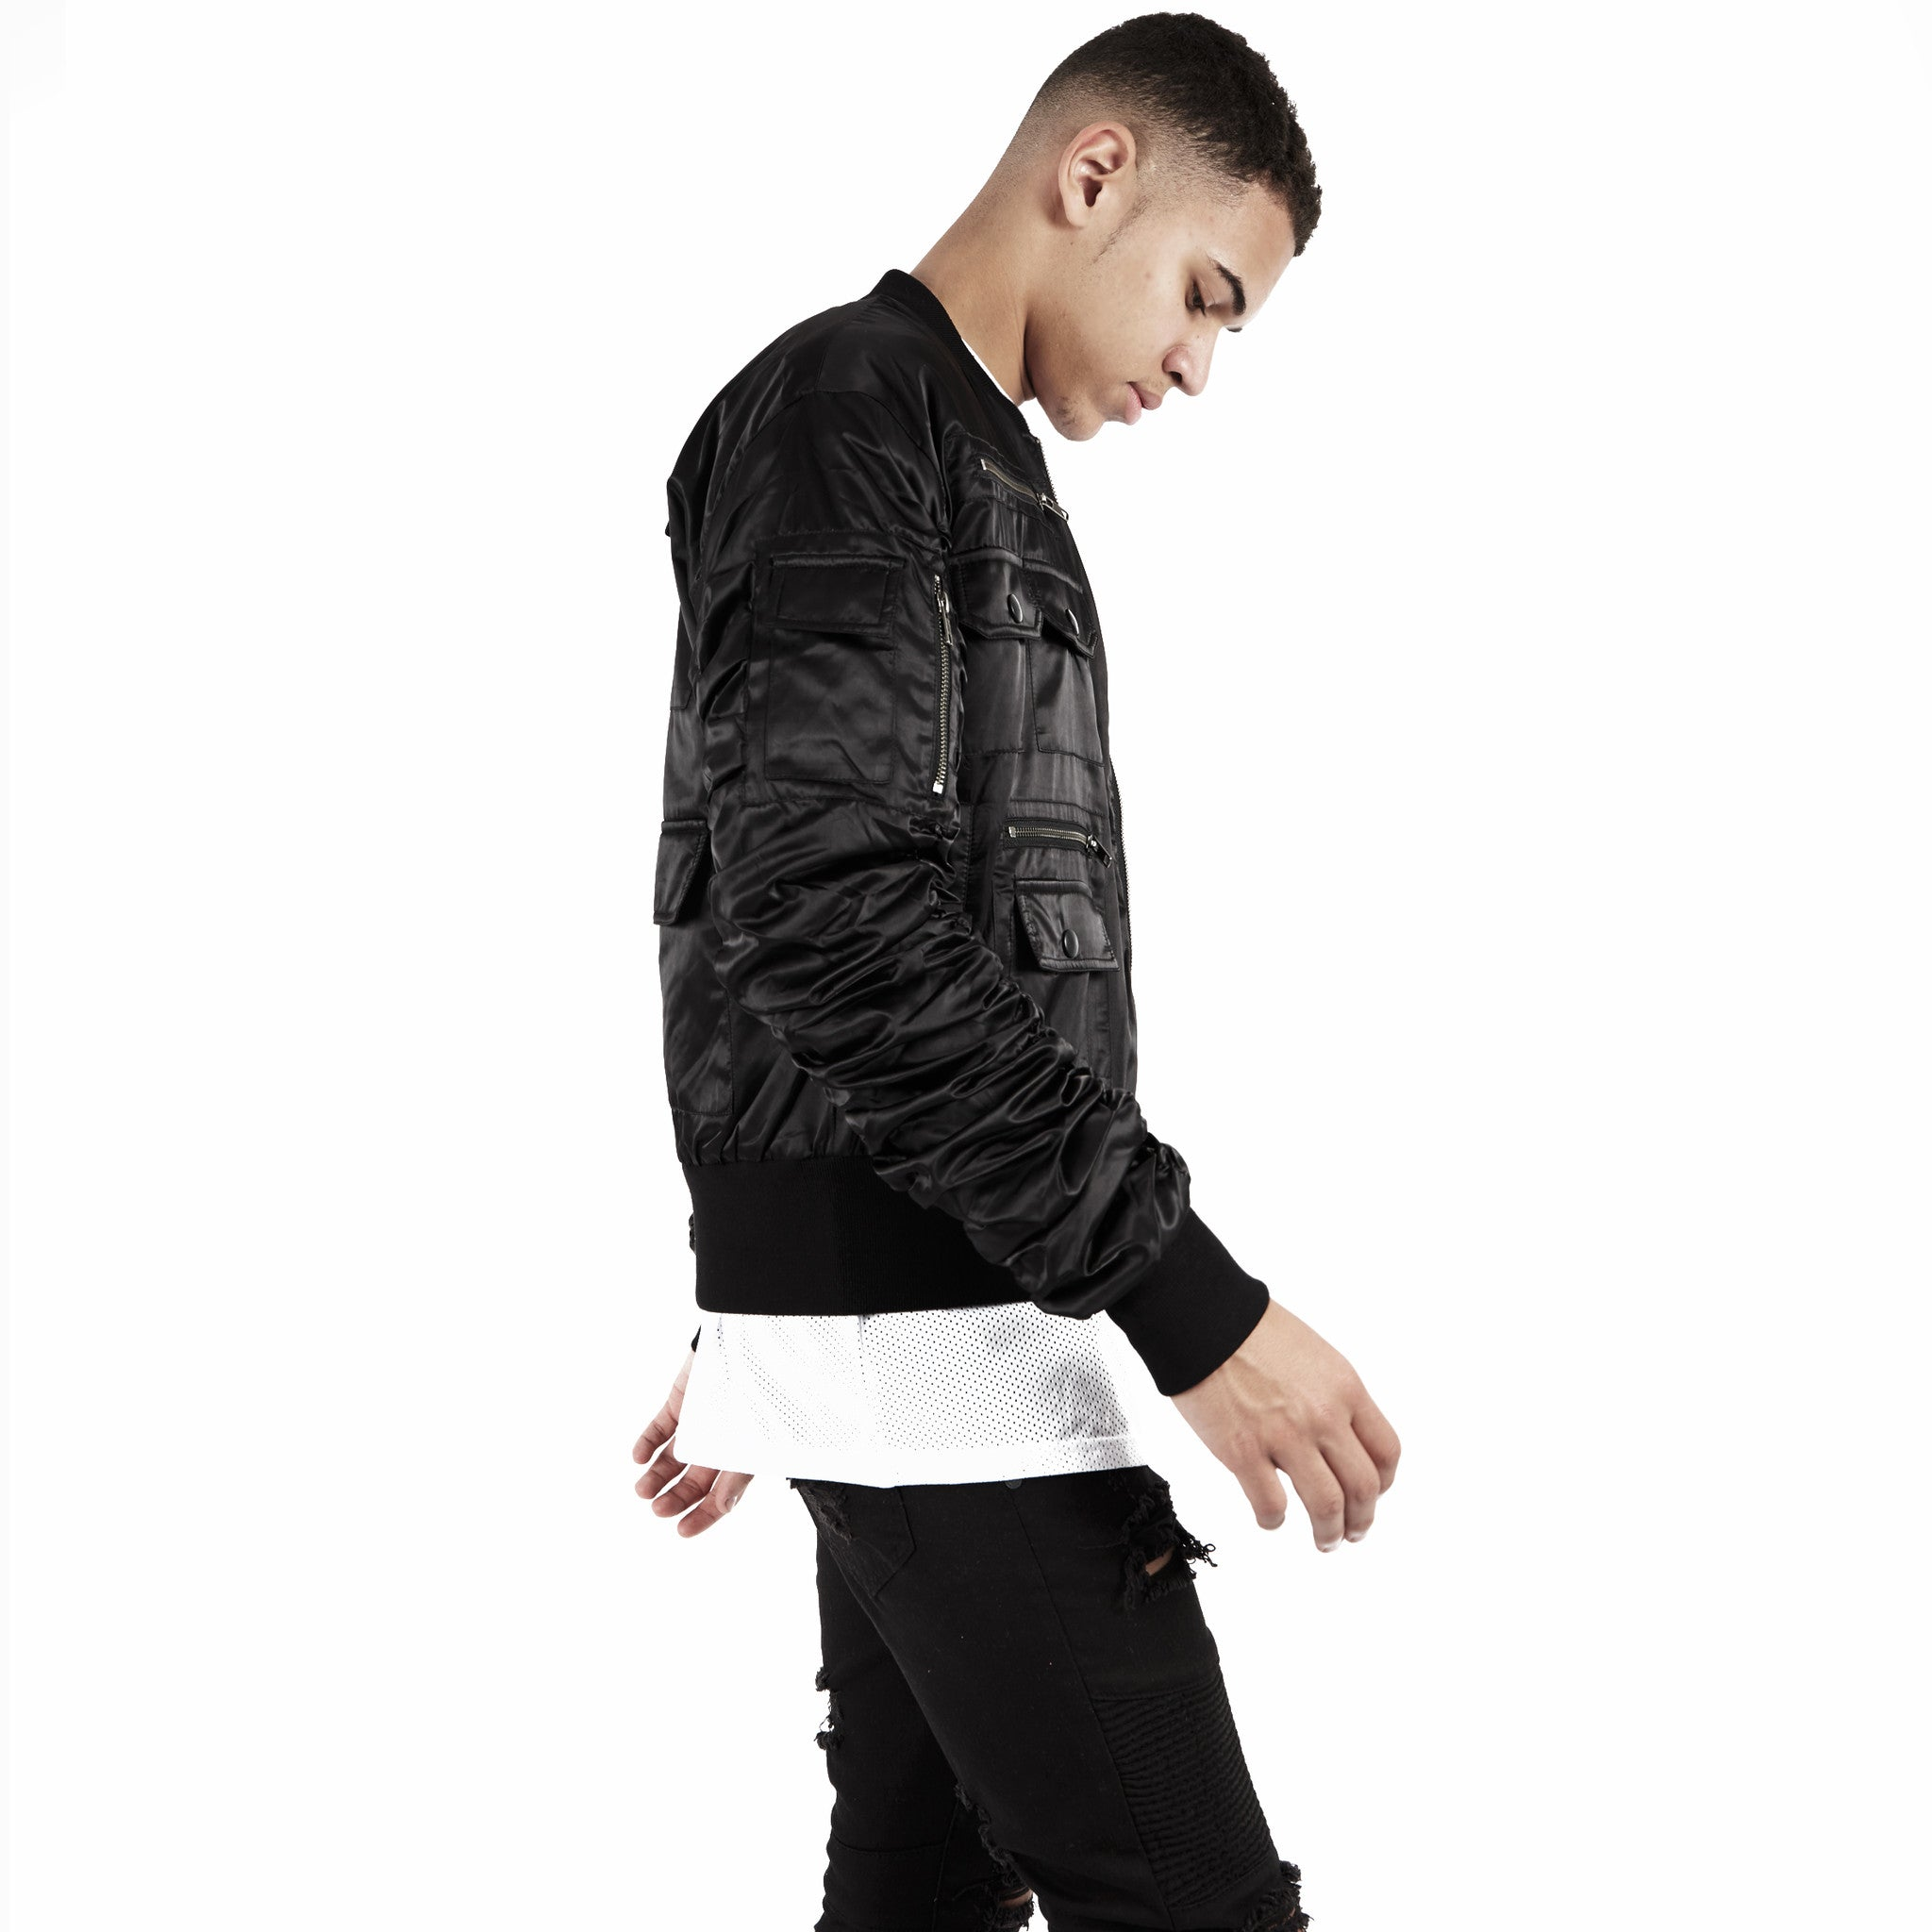 JK263 Exile Tactical Bomber Jacket - Black - underated london - underatedco - 7